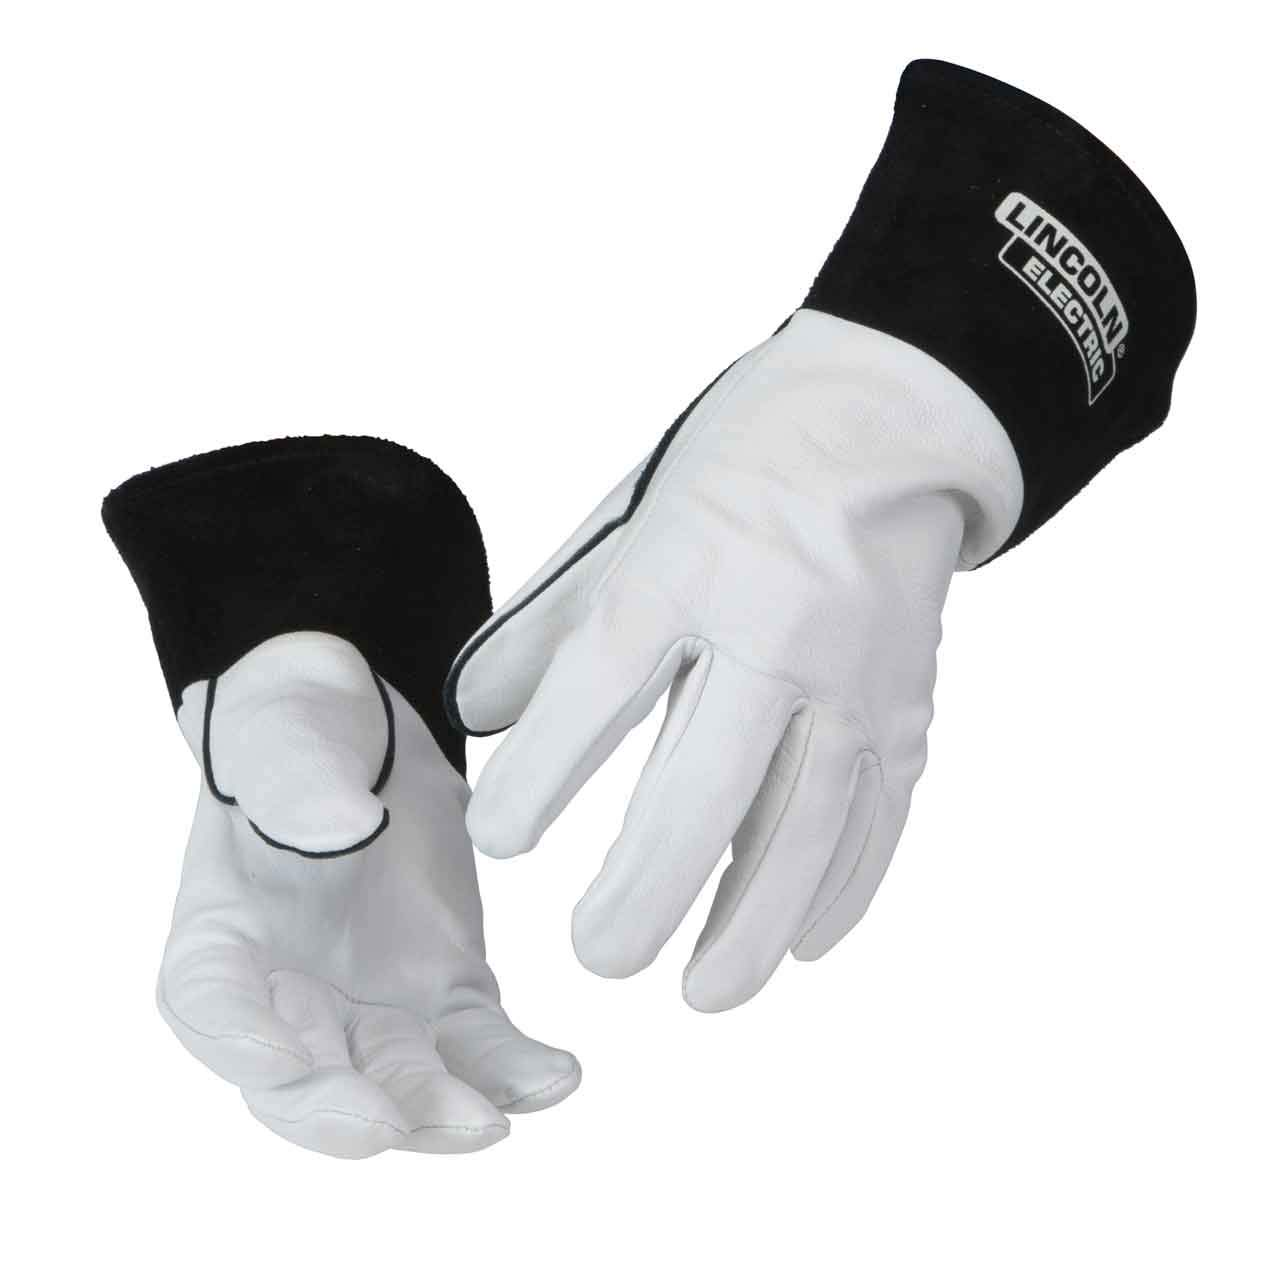 Lincoln Electric Grain Leather TIG Welding Gloves | High Dexterity |  Large | K2981-L by Lincoln Electric